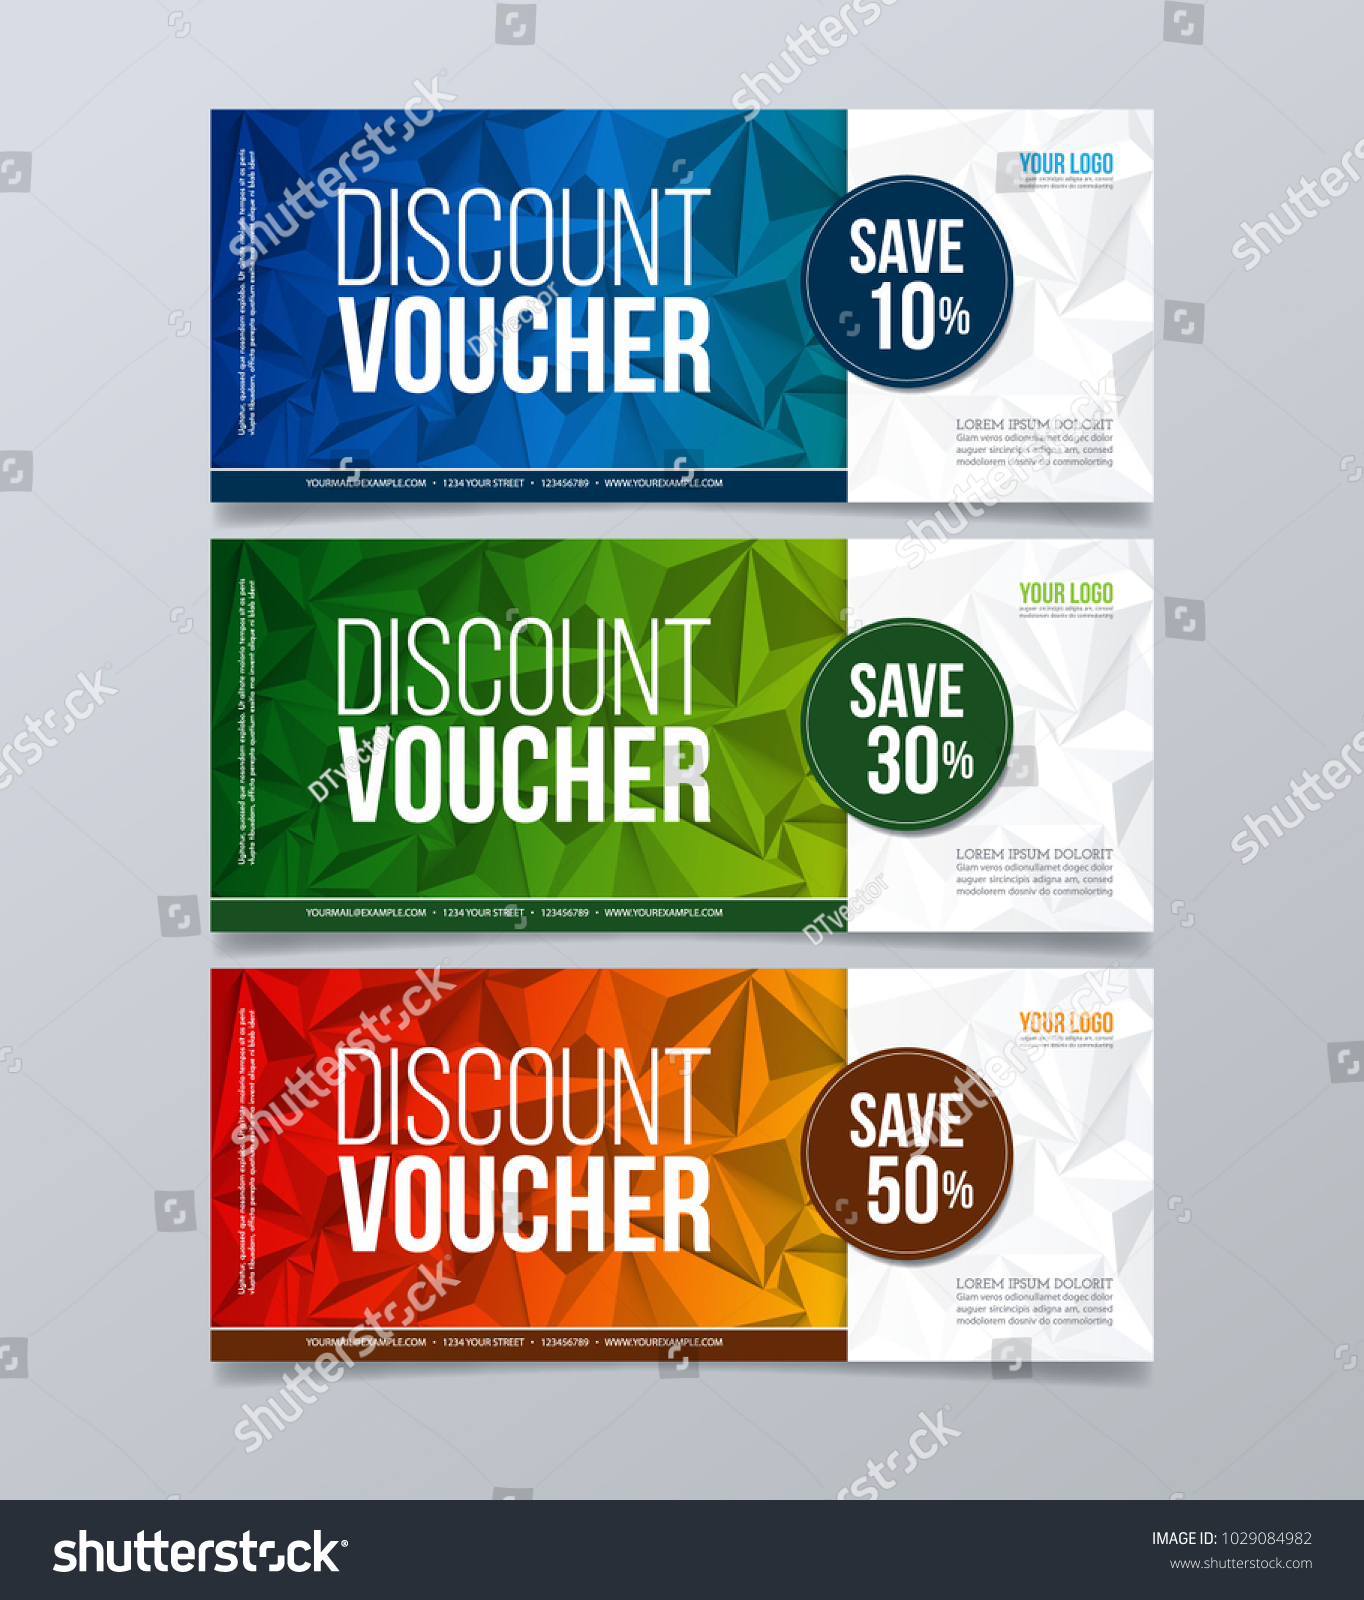 Discount Voucher Design brand marketing manager cover letter